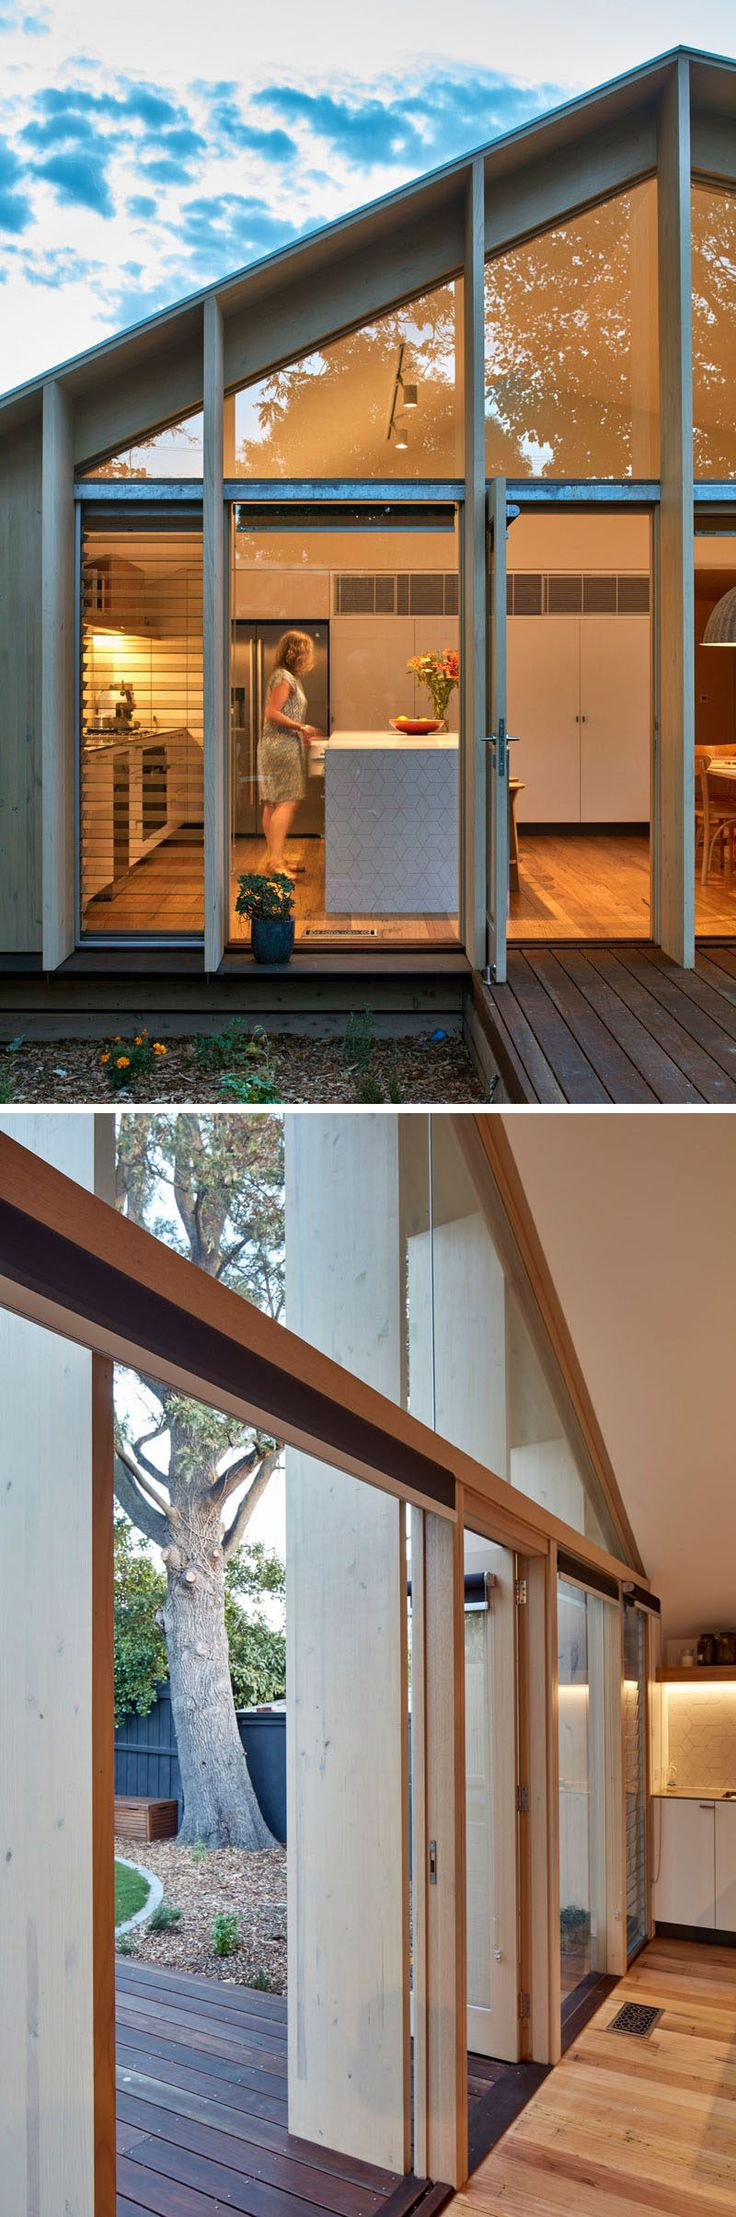 Laminated timber fins on the exterior of this Australian house extension provide structure, a finished surface and shade the interior from the sun.